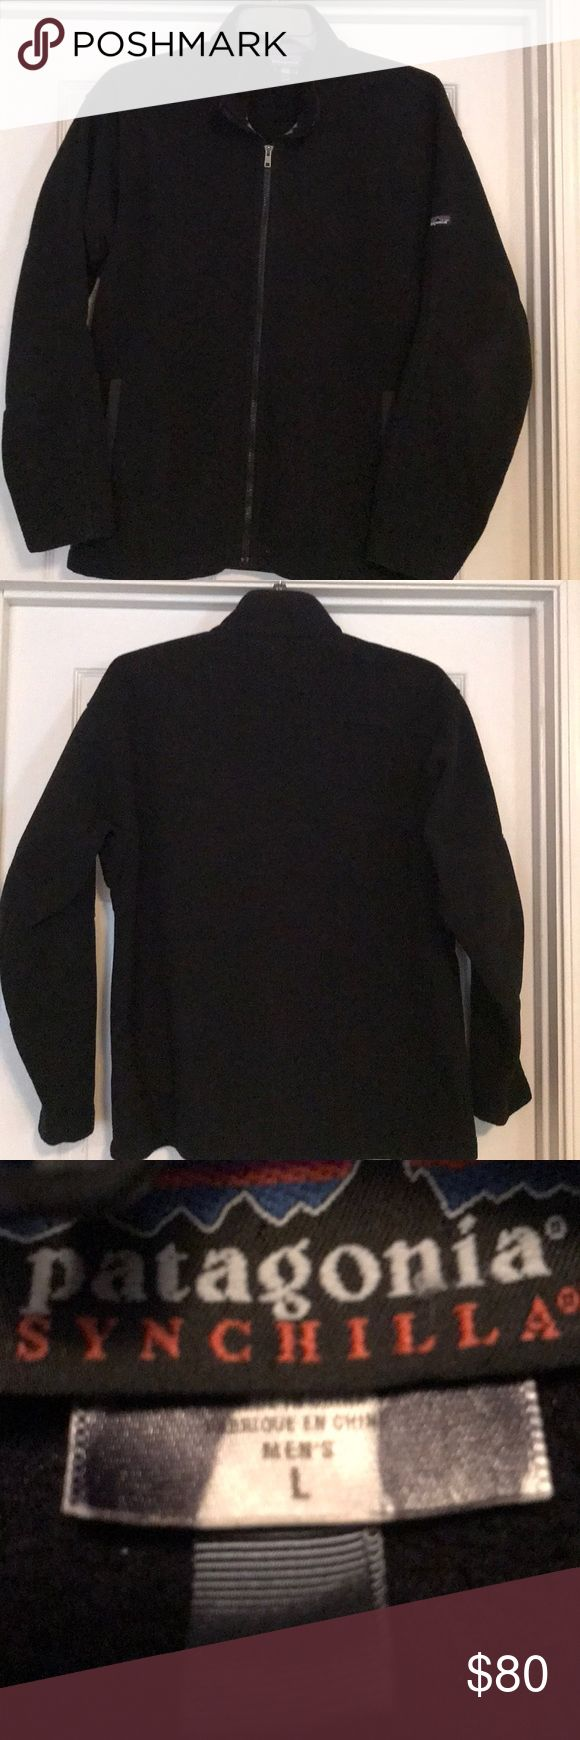 Men's Patagonia Synchilla jacket Size L great condition Patagonia Jackets & Coats